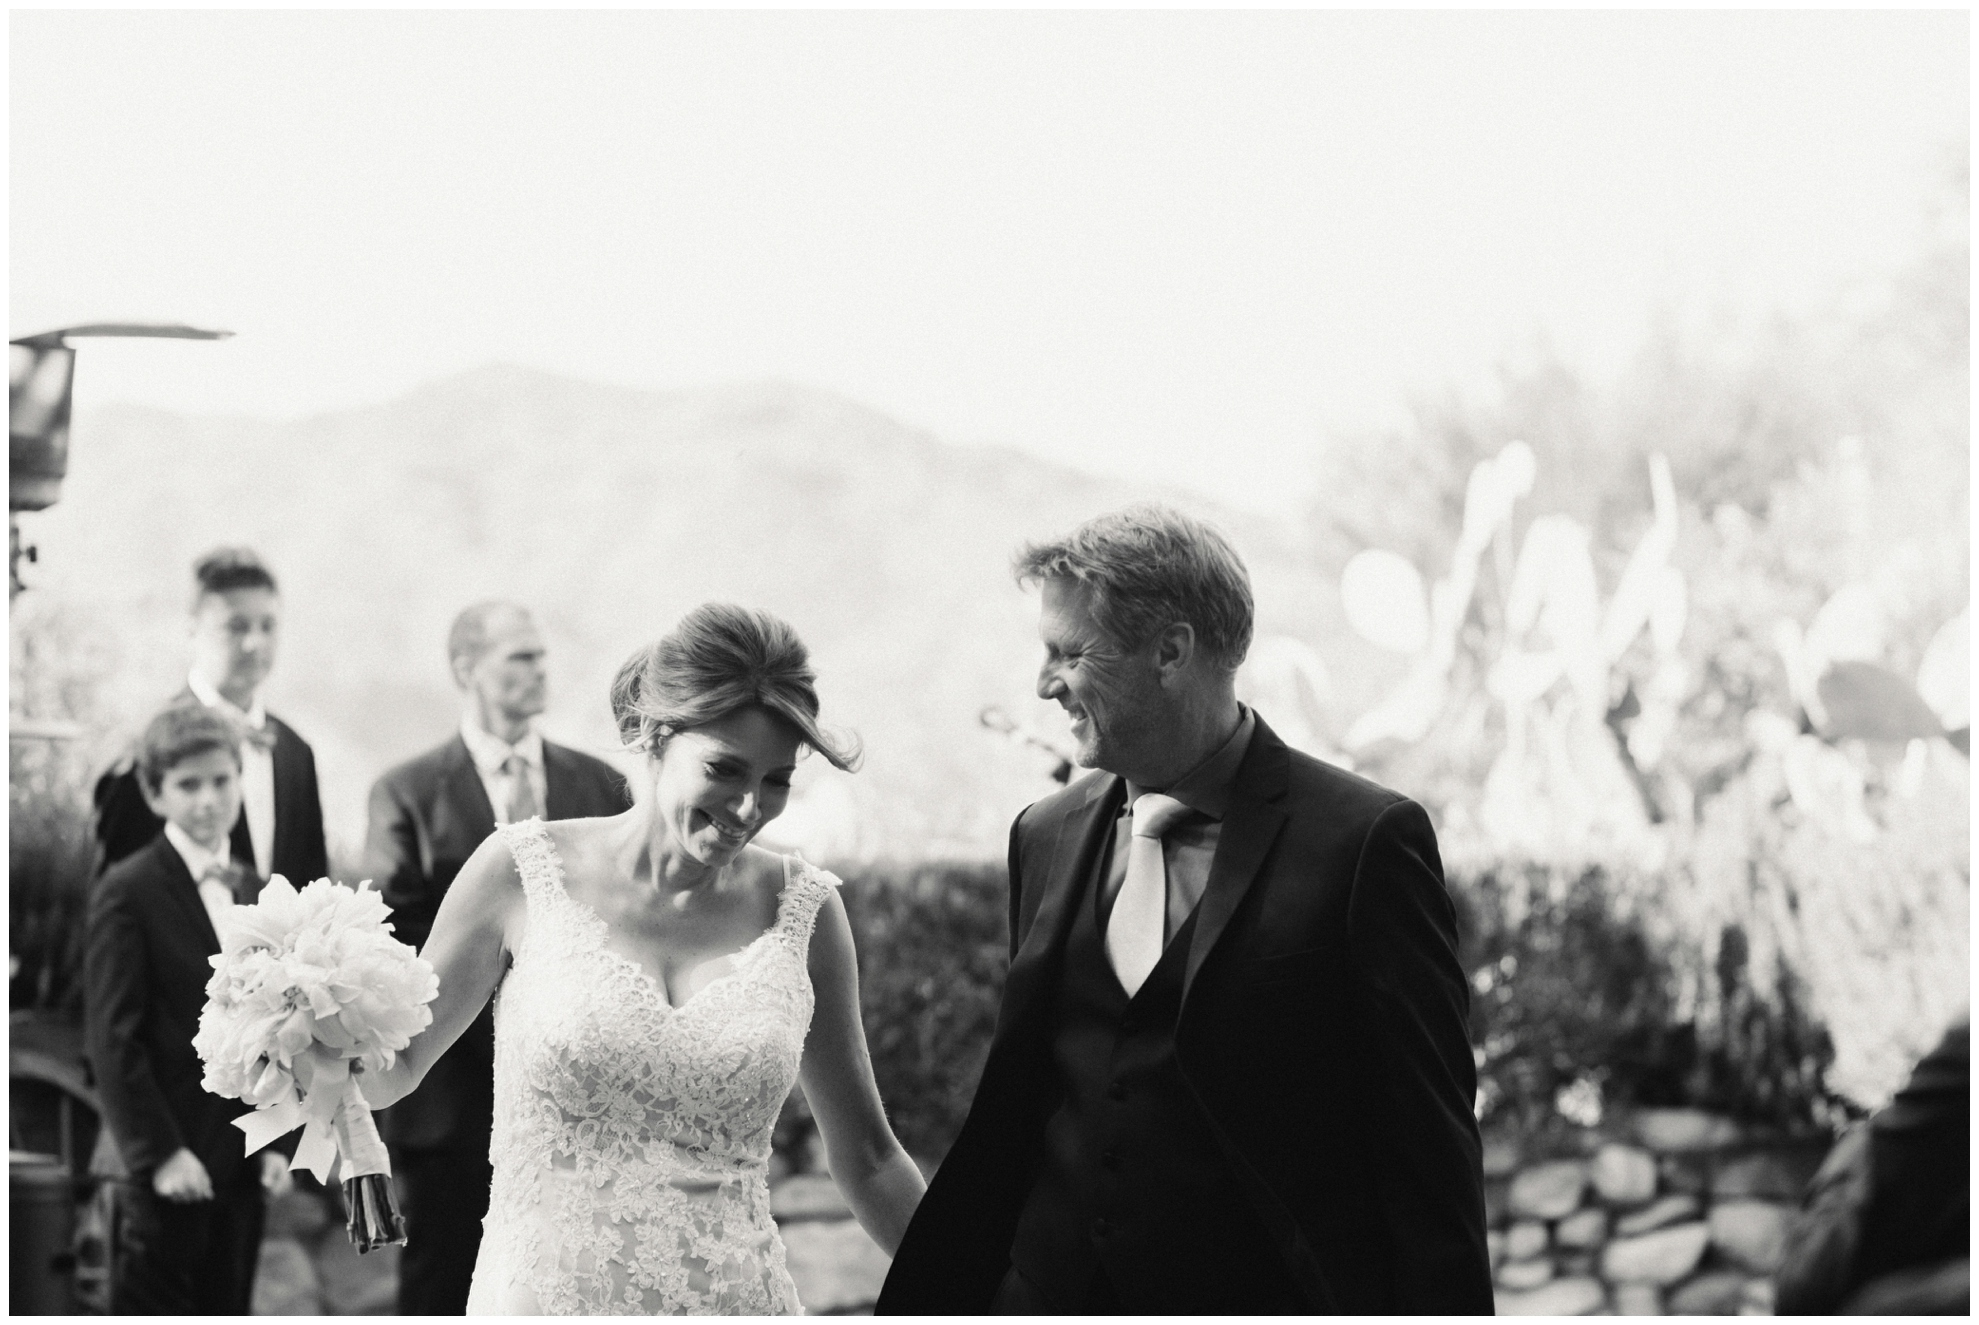 Sidney Morgan • Saddle Peak Wedding